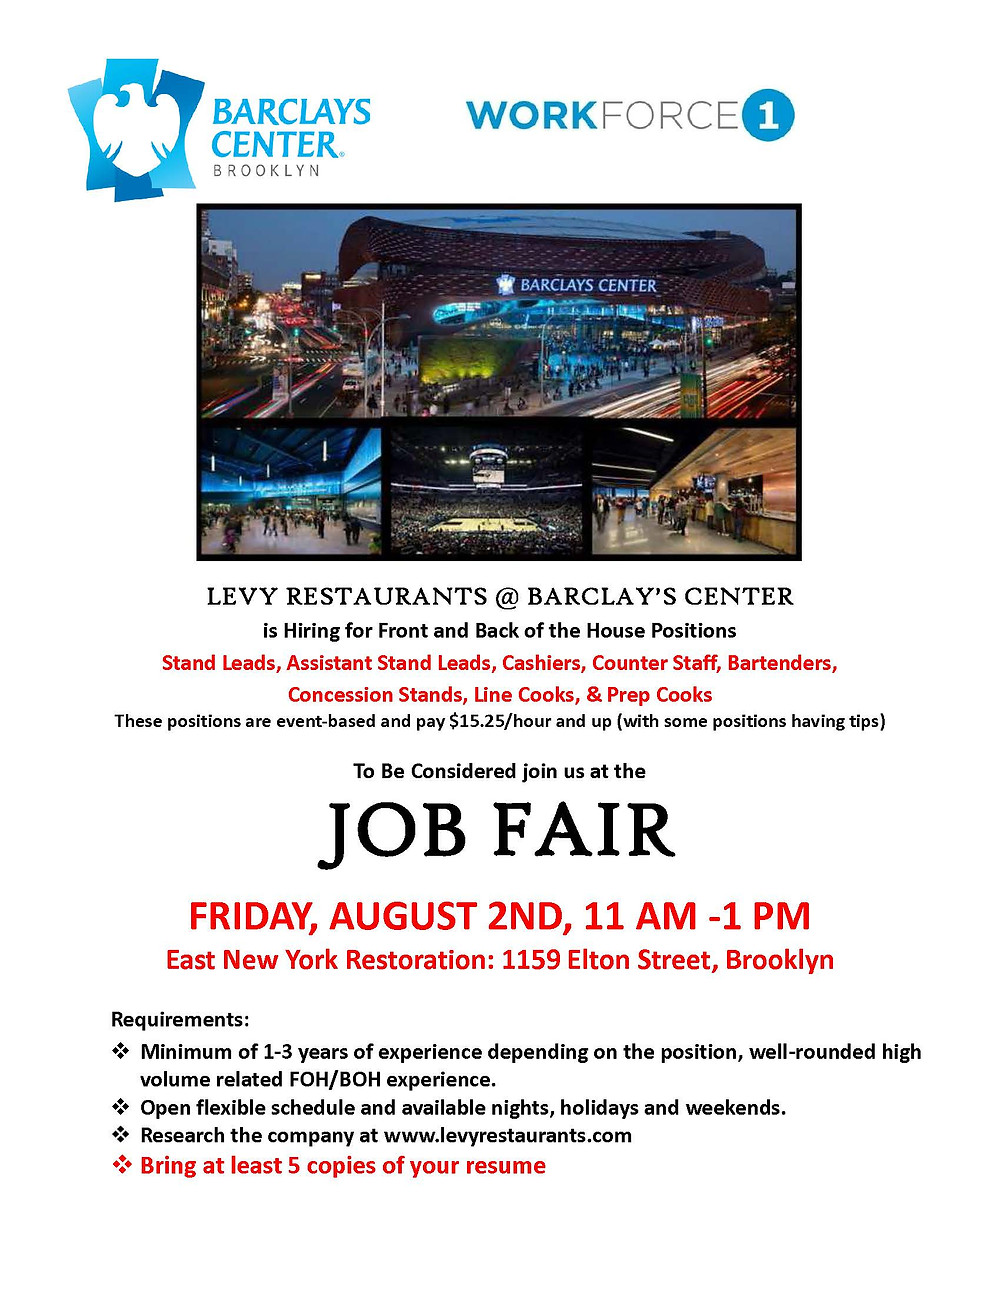 job fair barclays center levy restaurants east new york restoration august 2019